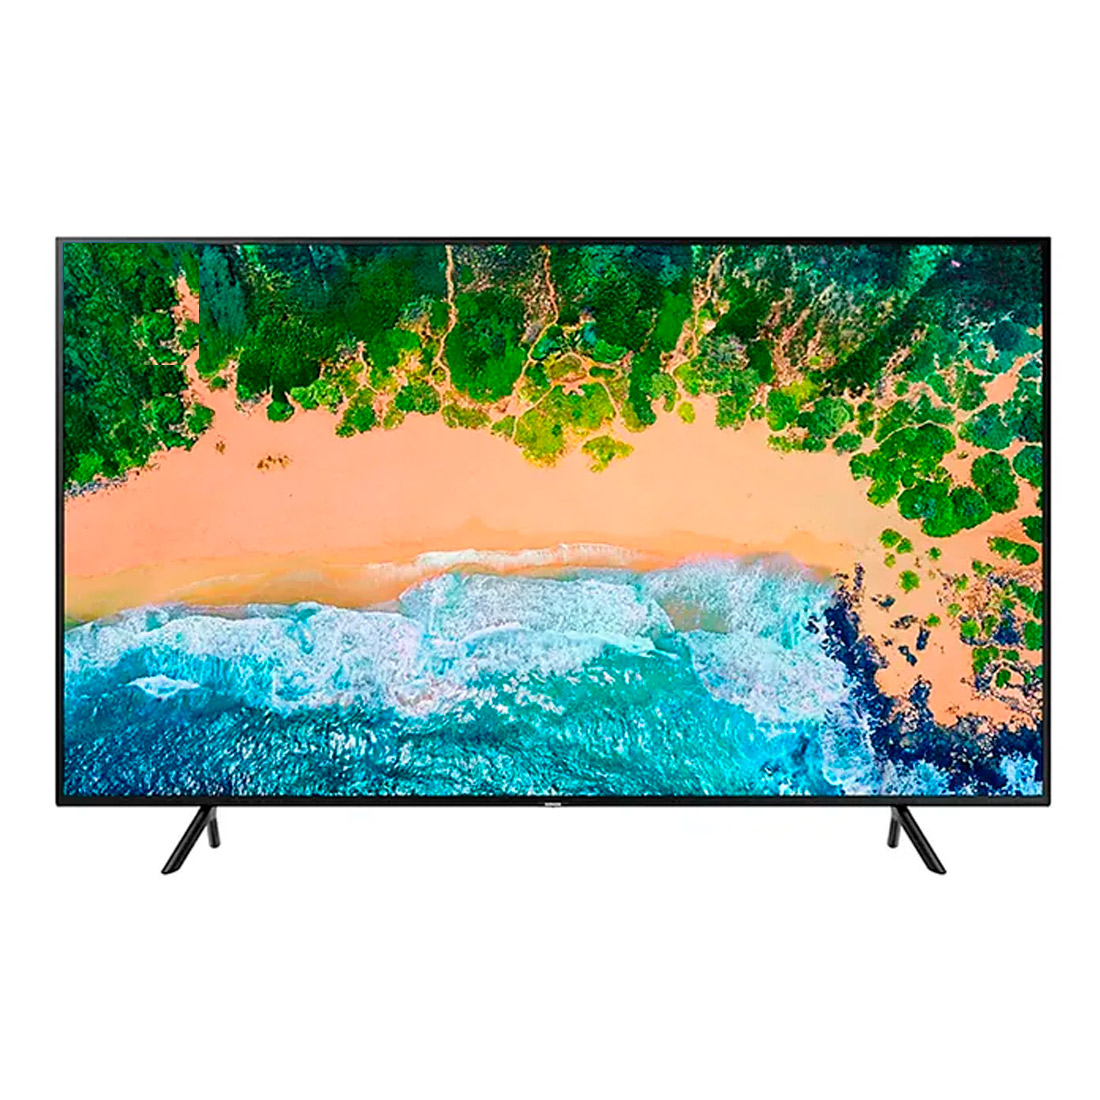 "Smart TV SAMSUNG UN43NU7100PCZE 43"" 4K UHD"